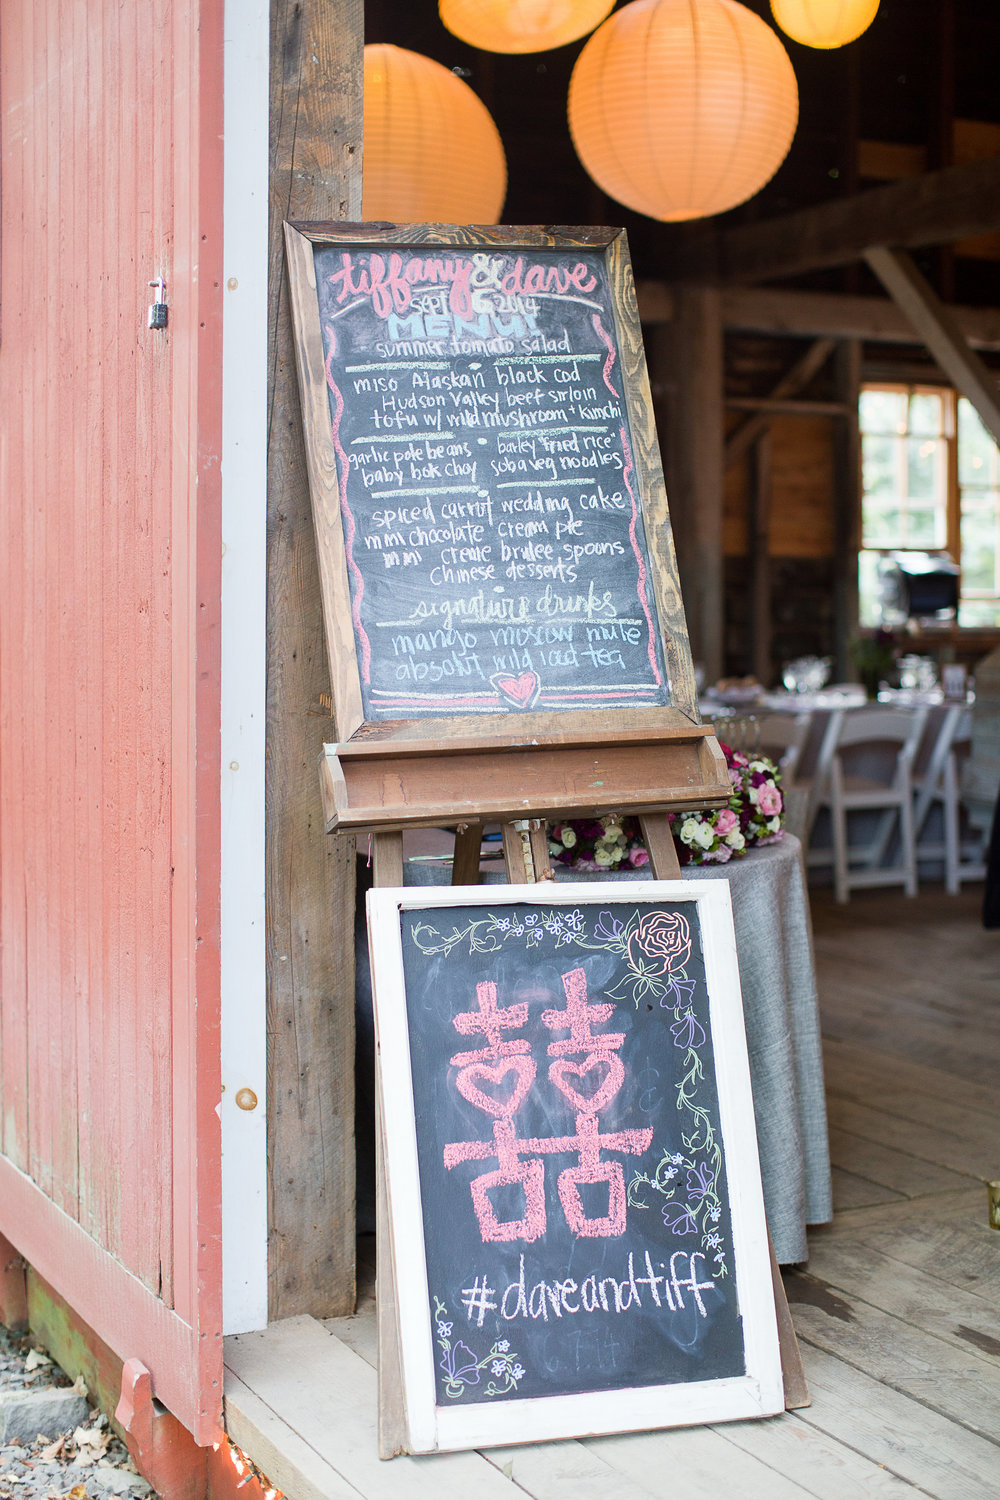 CHALKBOARD MENU AND DOUBLE HAPPINESS